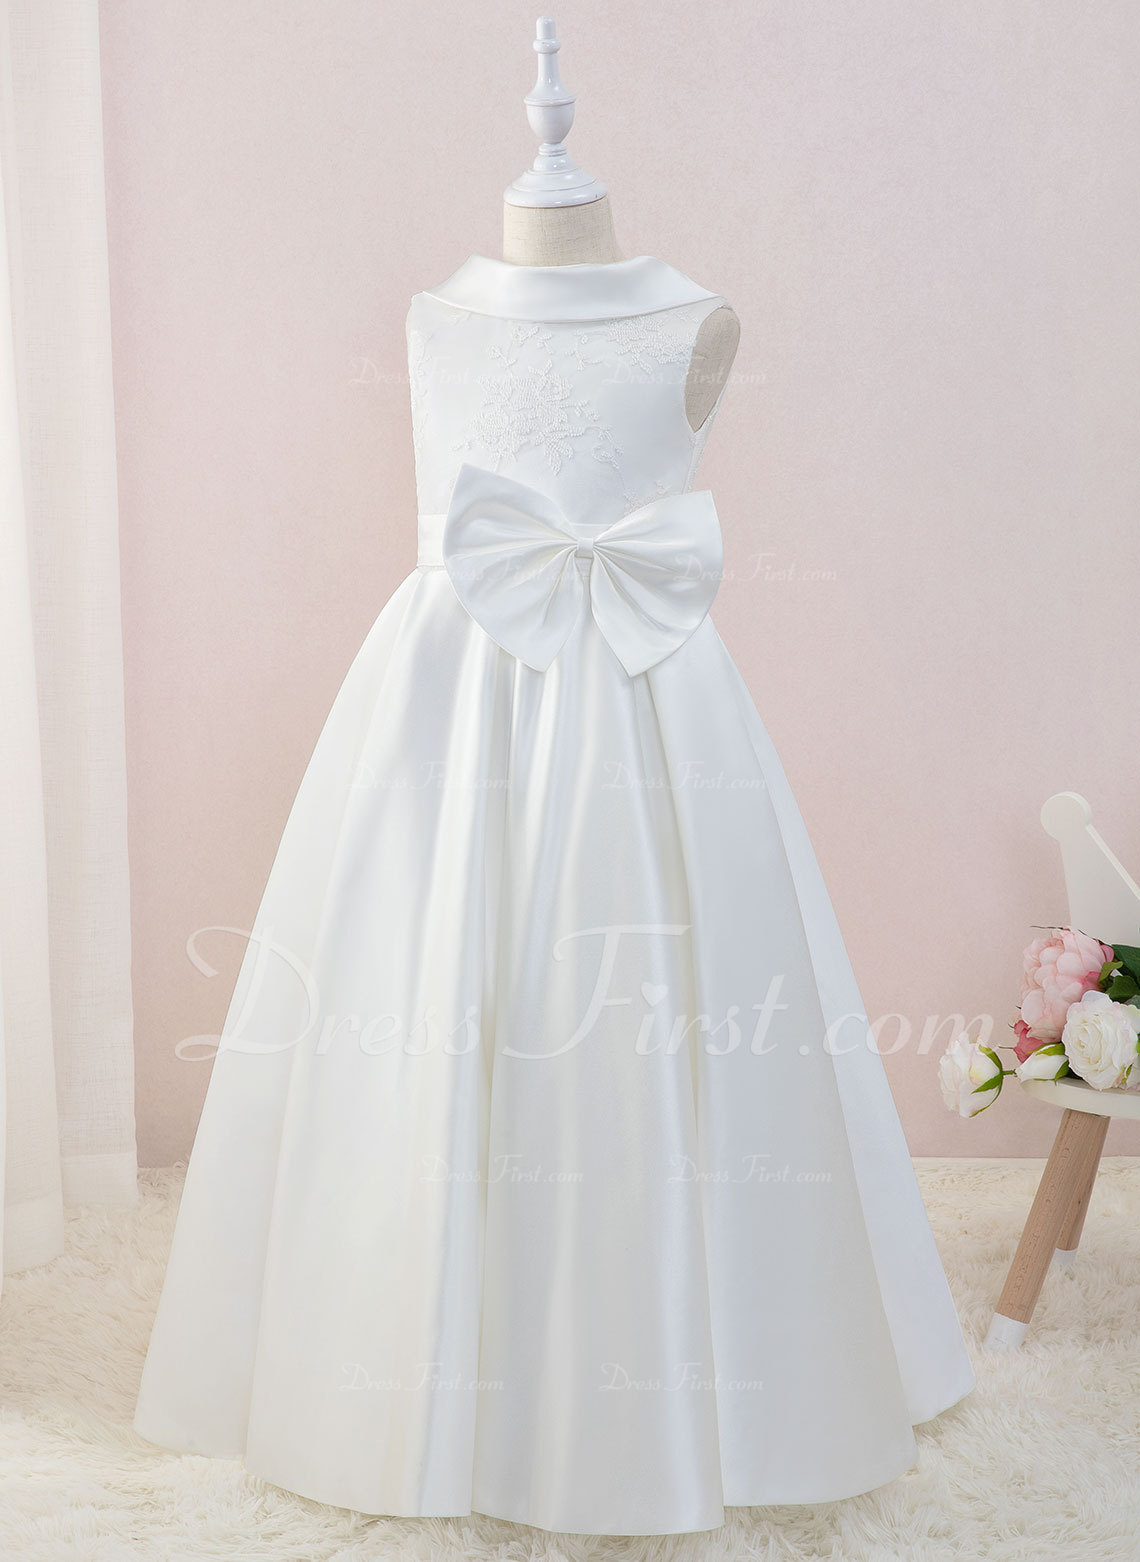 Details about  /Princess Floor Length Flower Girl Dress Lace Tulle Sleeveless Scoop Neck with